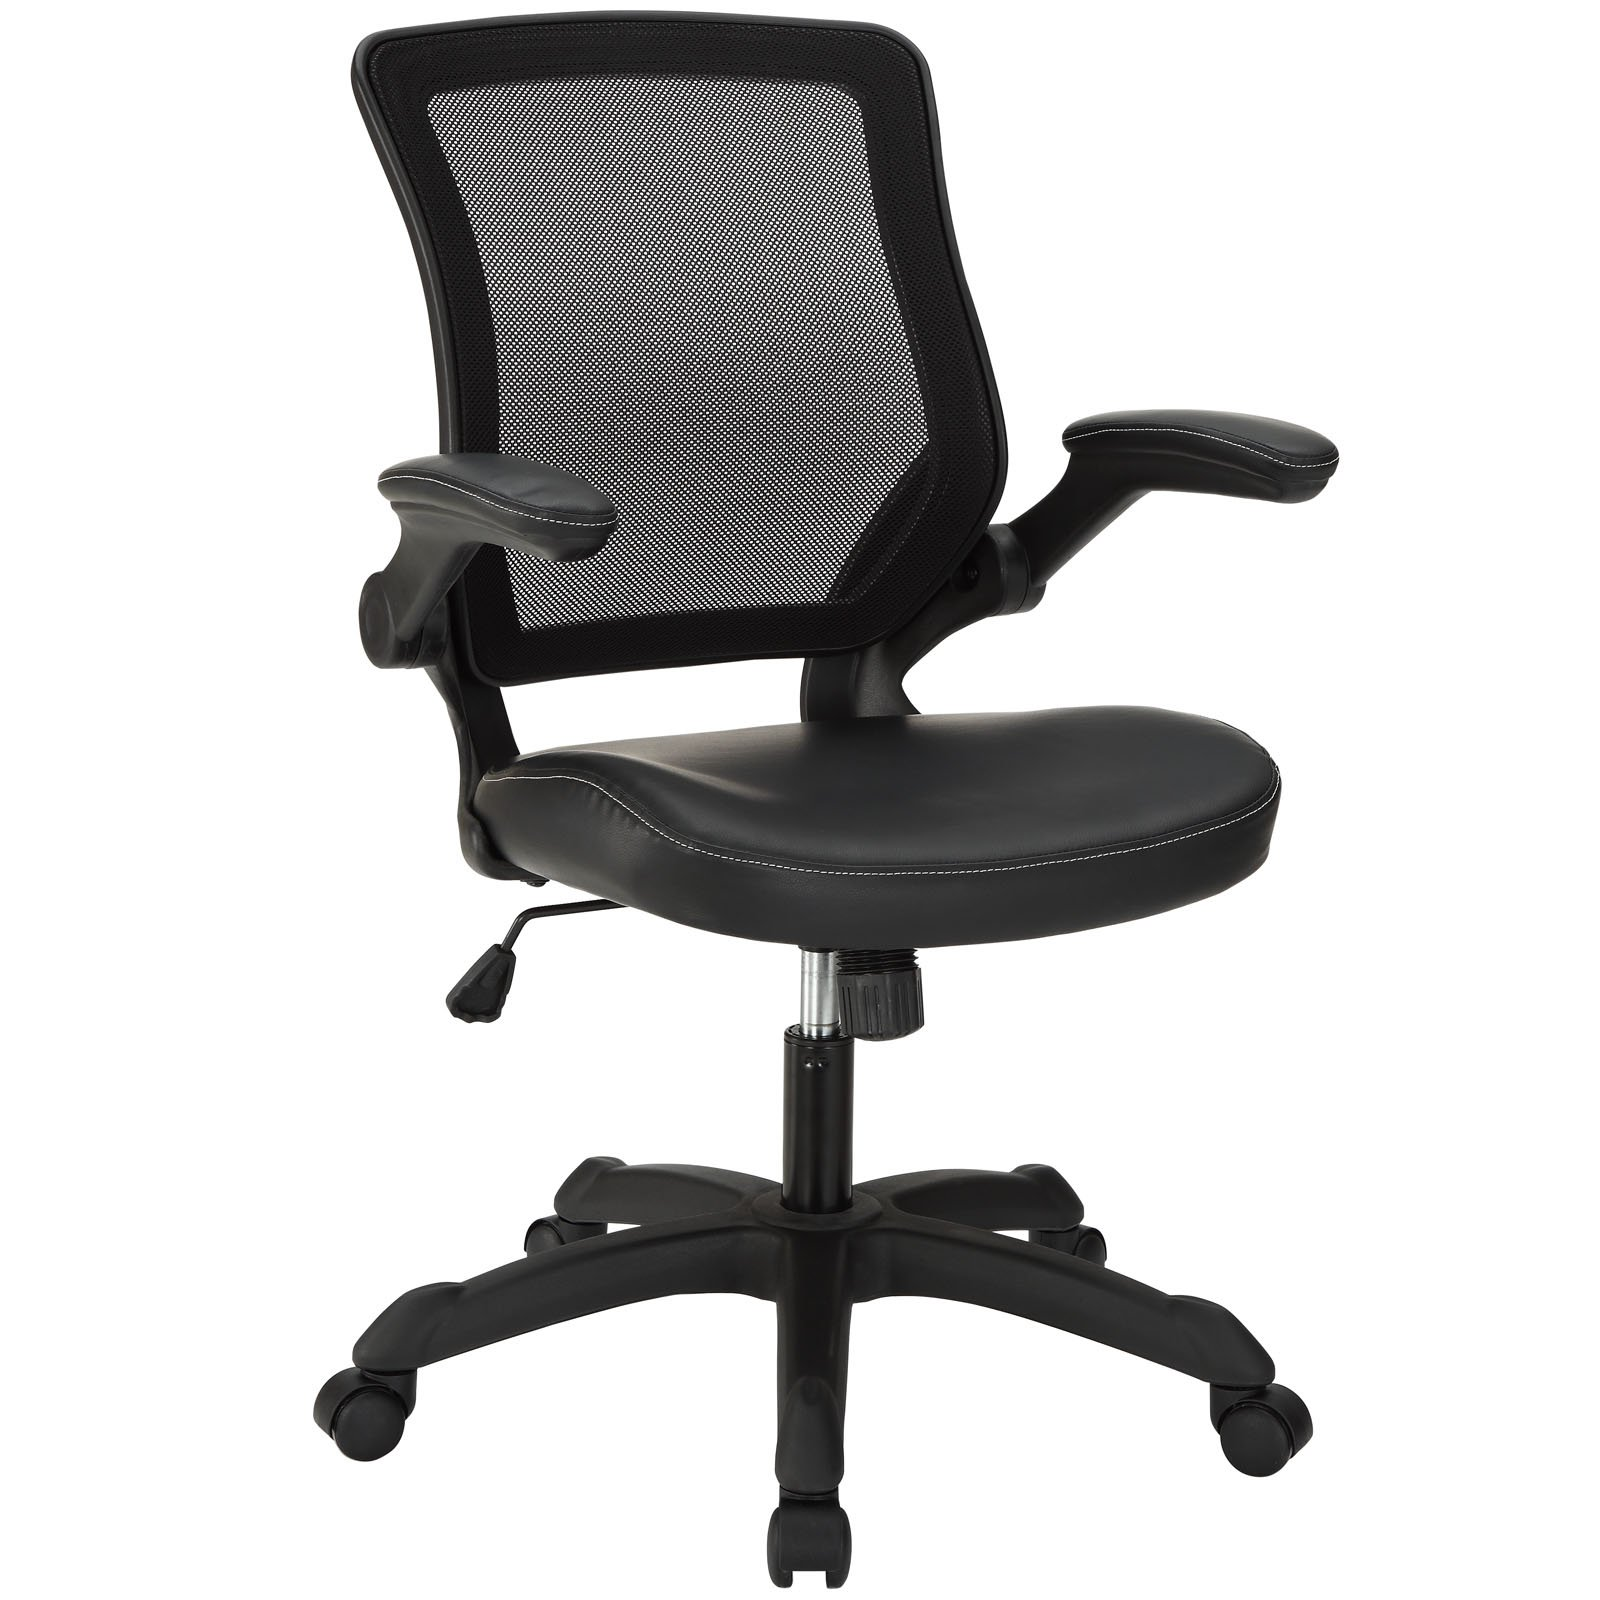 Modway Veer Office Chair with Mesh Back and Black Mesh Seat With Flip-Up Arms  - Ergonomic Desk And Computer Chair by Modway